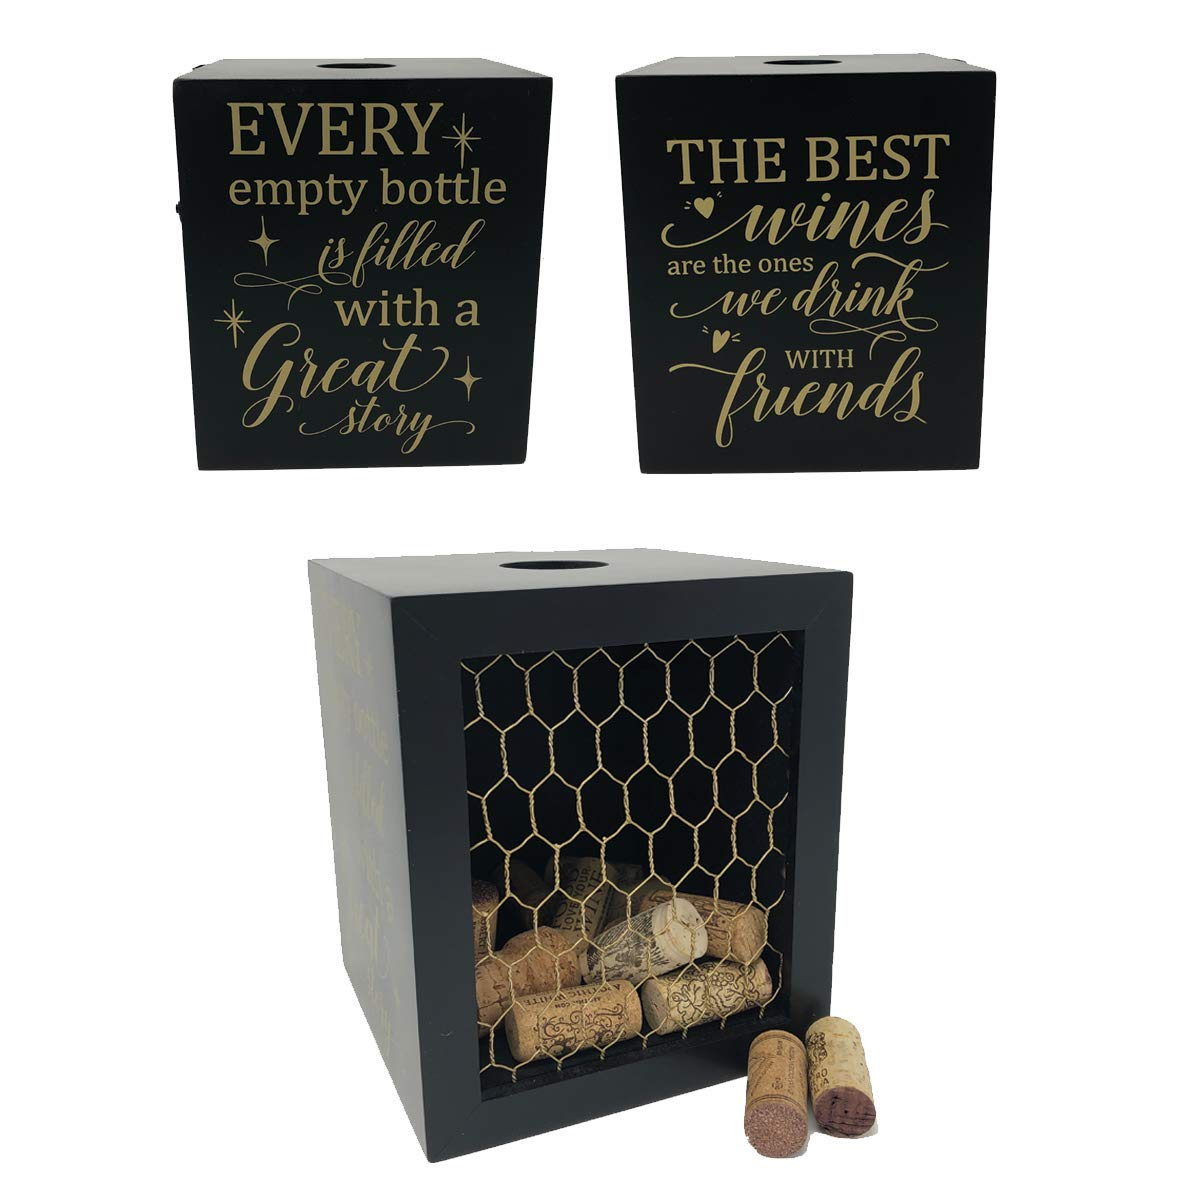 Napa Gift Store Wine Cork Shadow Box & Display Case with Chicken Wire - Holds Over 60 Corks - 7'' x 6'' x 6'' - Cork Holder, Wine Decor for Home & Kitchen